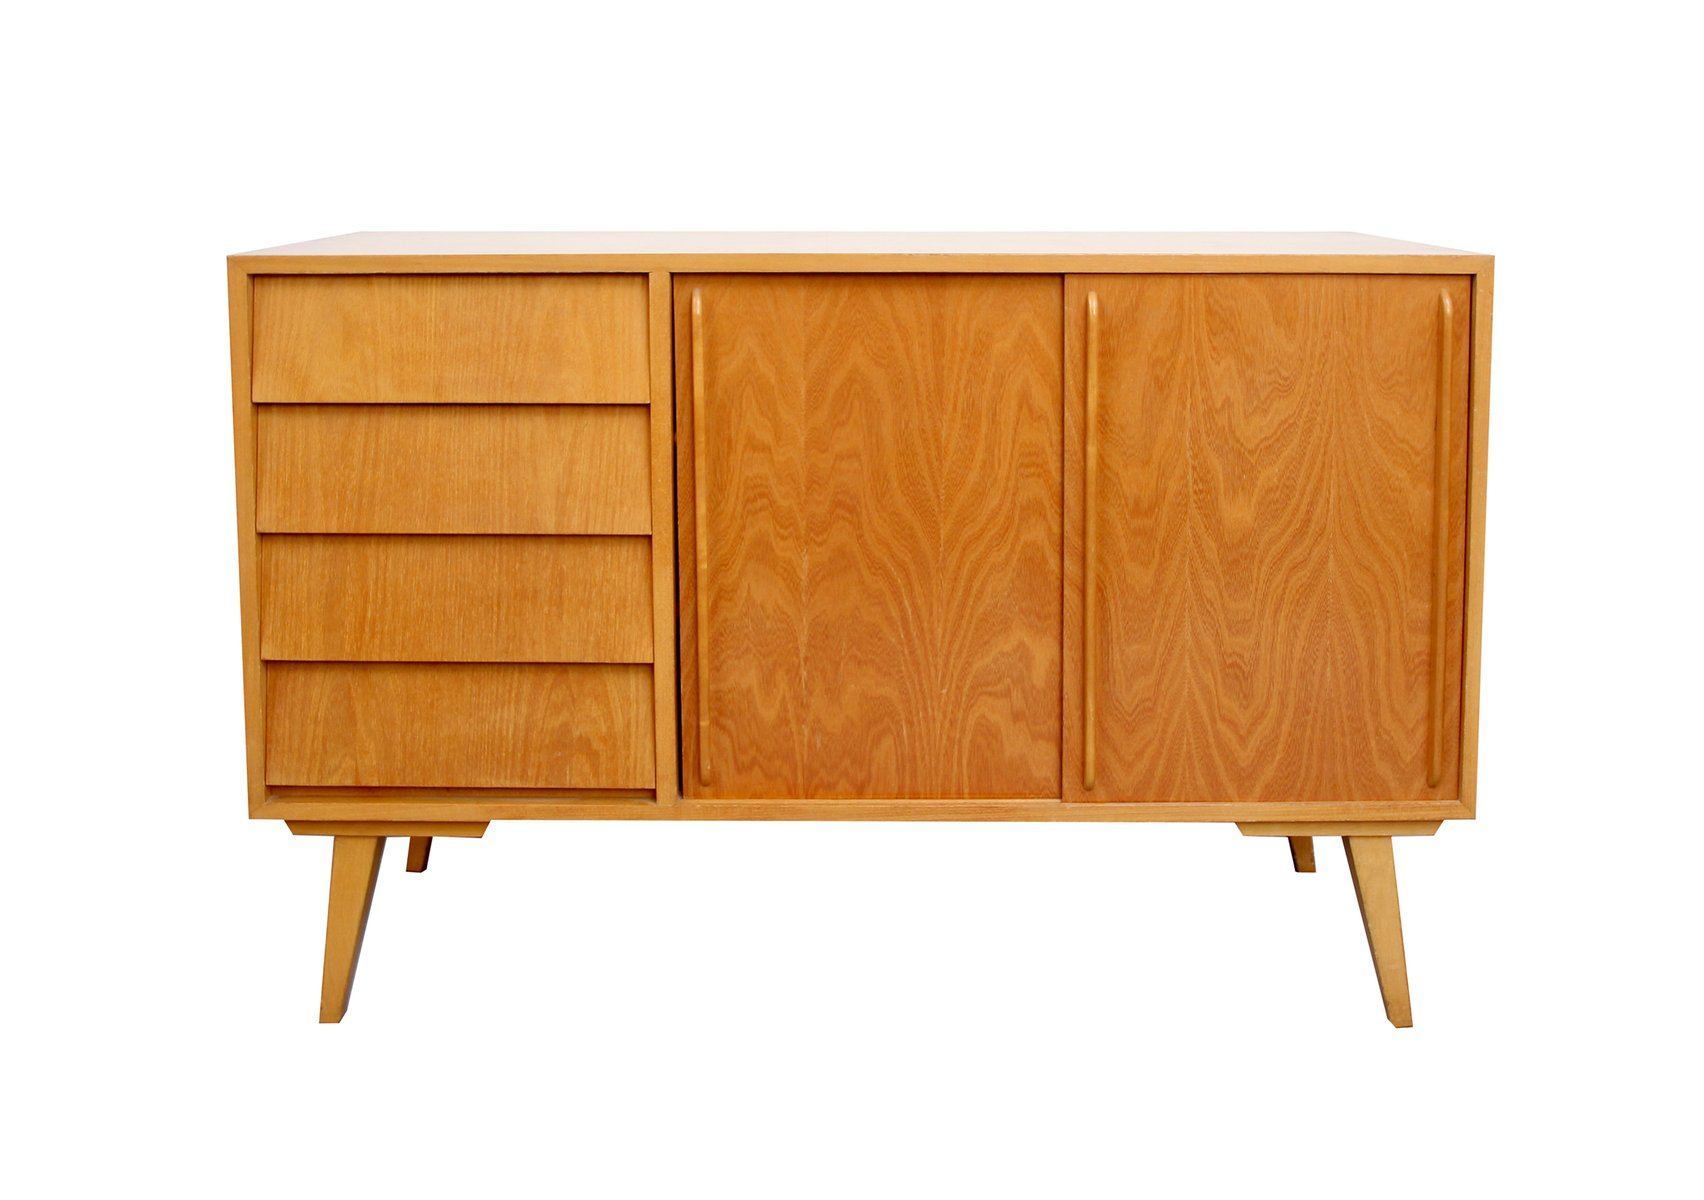 ash sideboard with sliding doors 1950s for sale at pamono. Black Bedroom Furniture Sets. Home Design Ideas